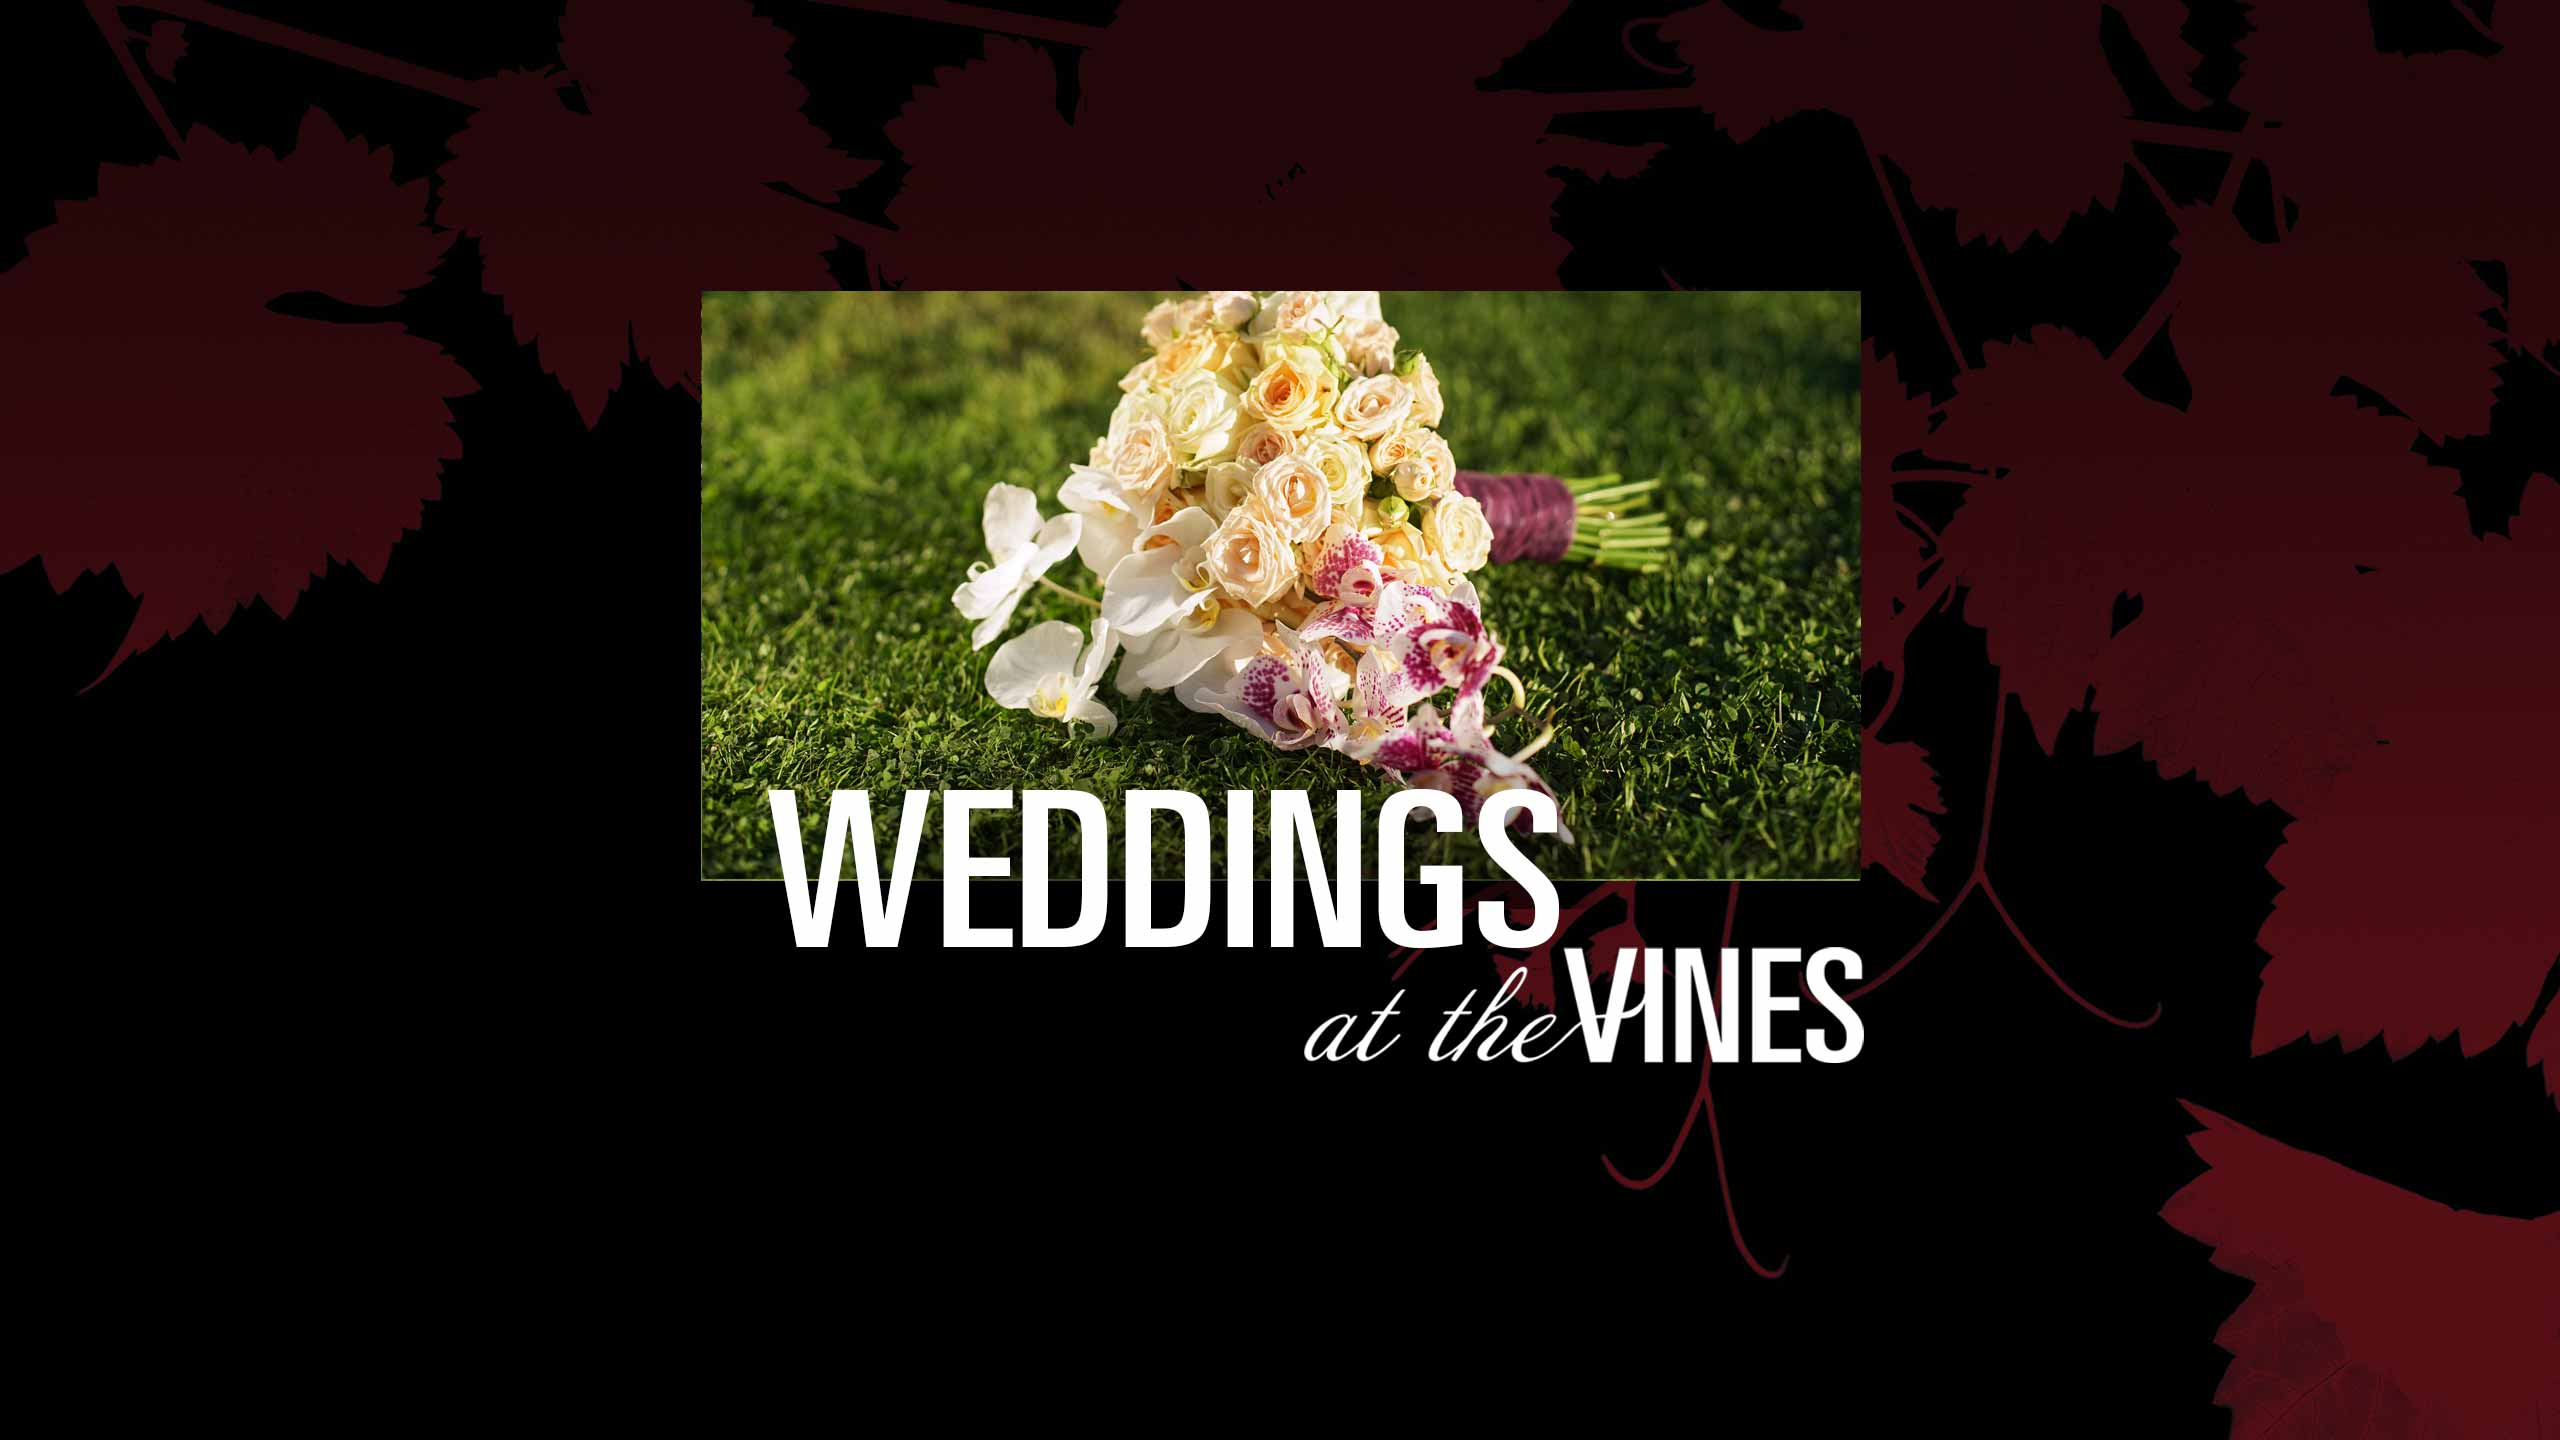 vines_weddings